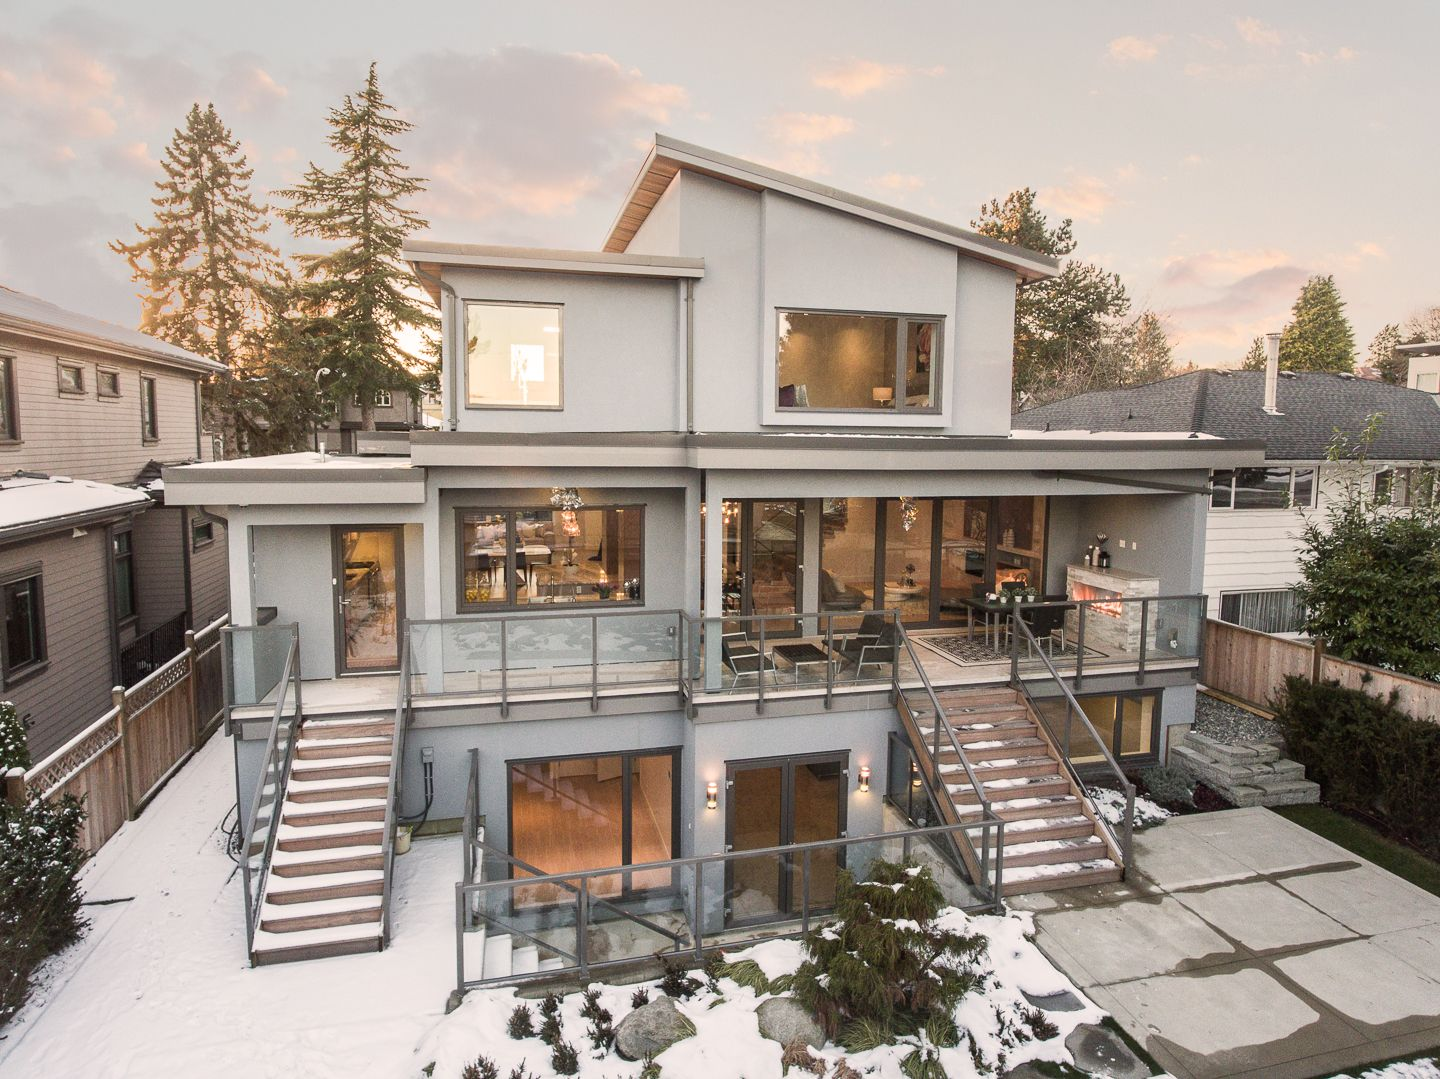 Photo 2: Photos: 6978 LAUREL ST in VANCOUVER: South Cambie House for sale (Vancouver West)